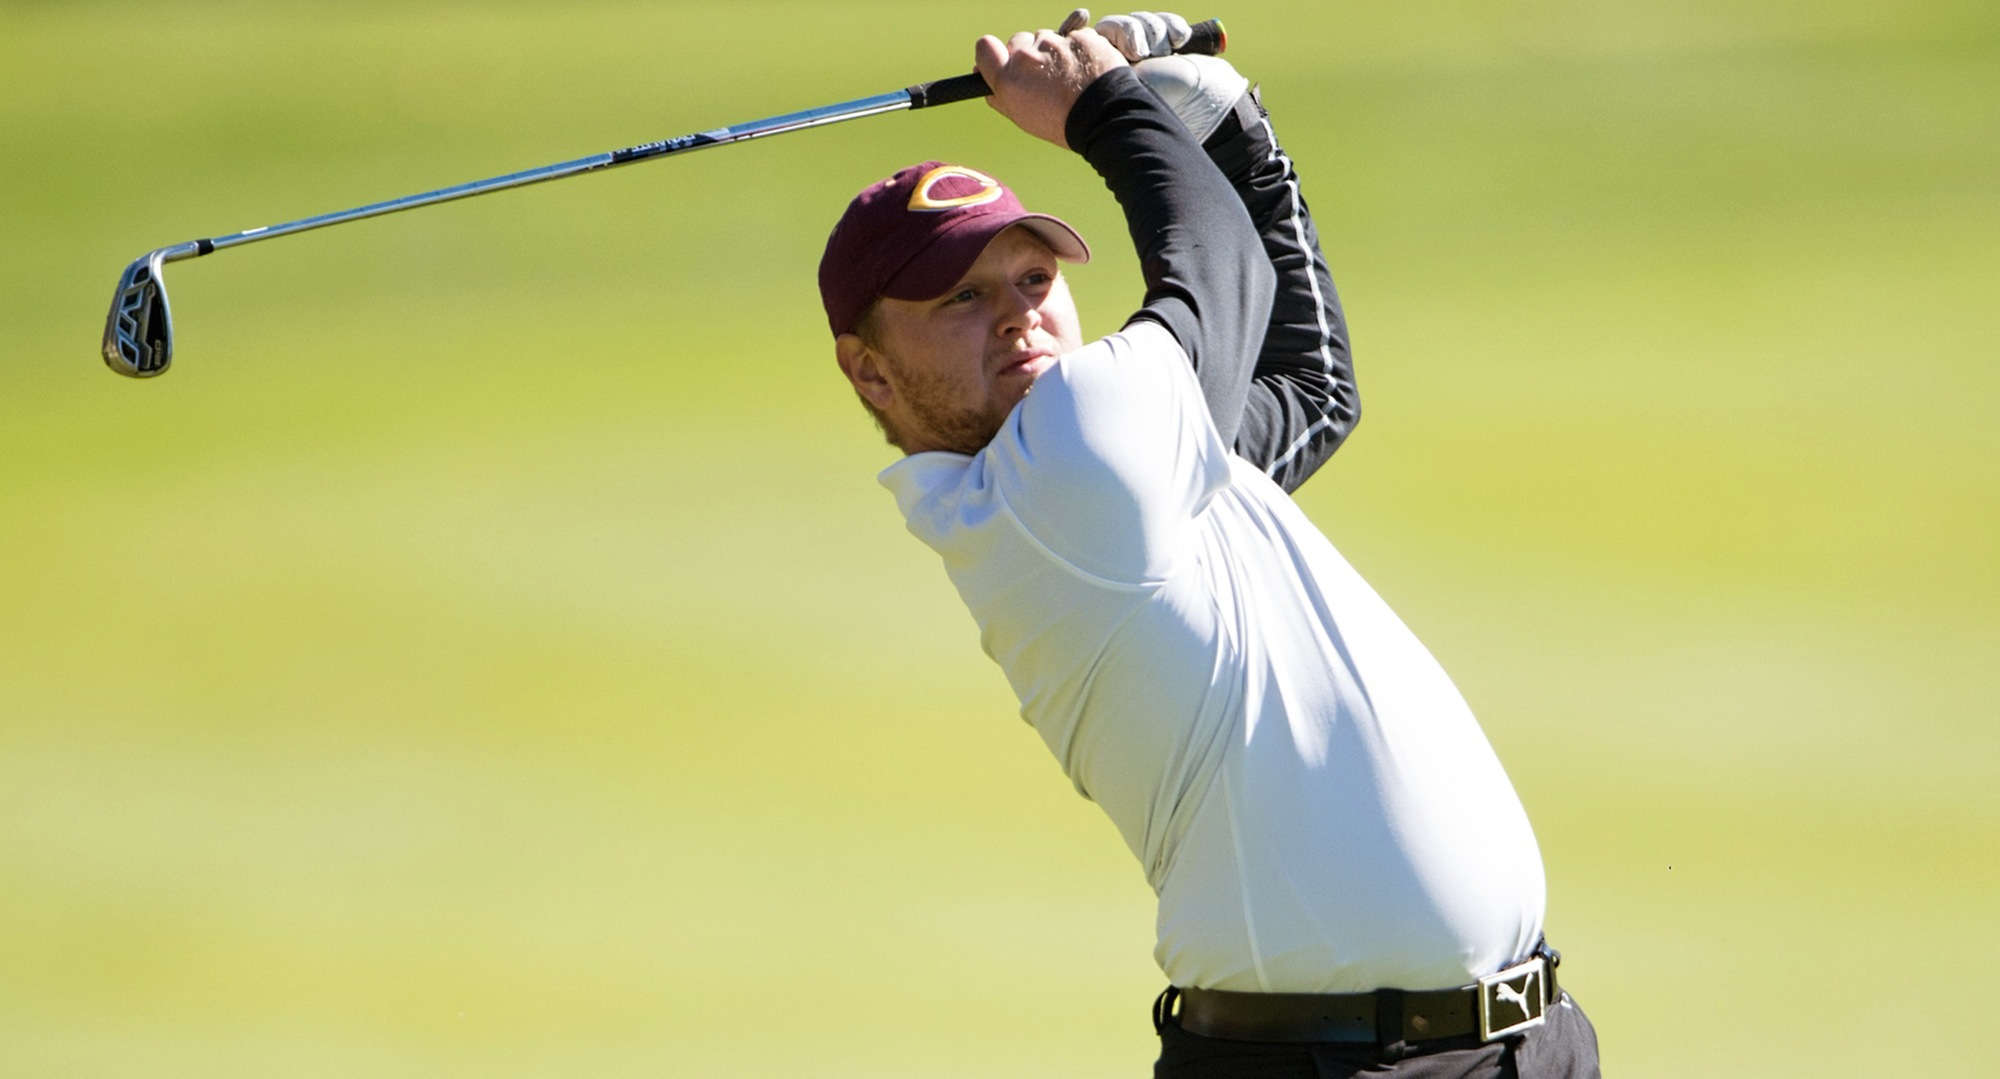 Nathaniel Kahlbaugh led the Cobbers at the spring opener in Missouri as he shot a 73-78 and finished in a tie for 16th place at the NSIC Preview.